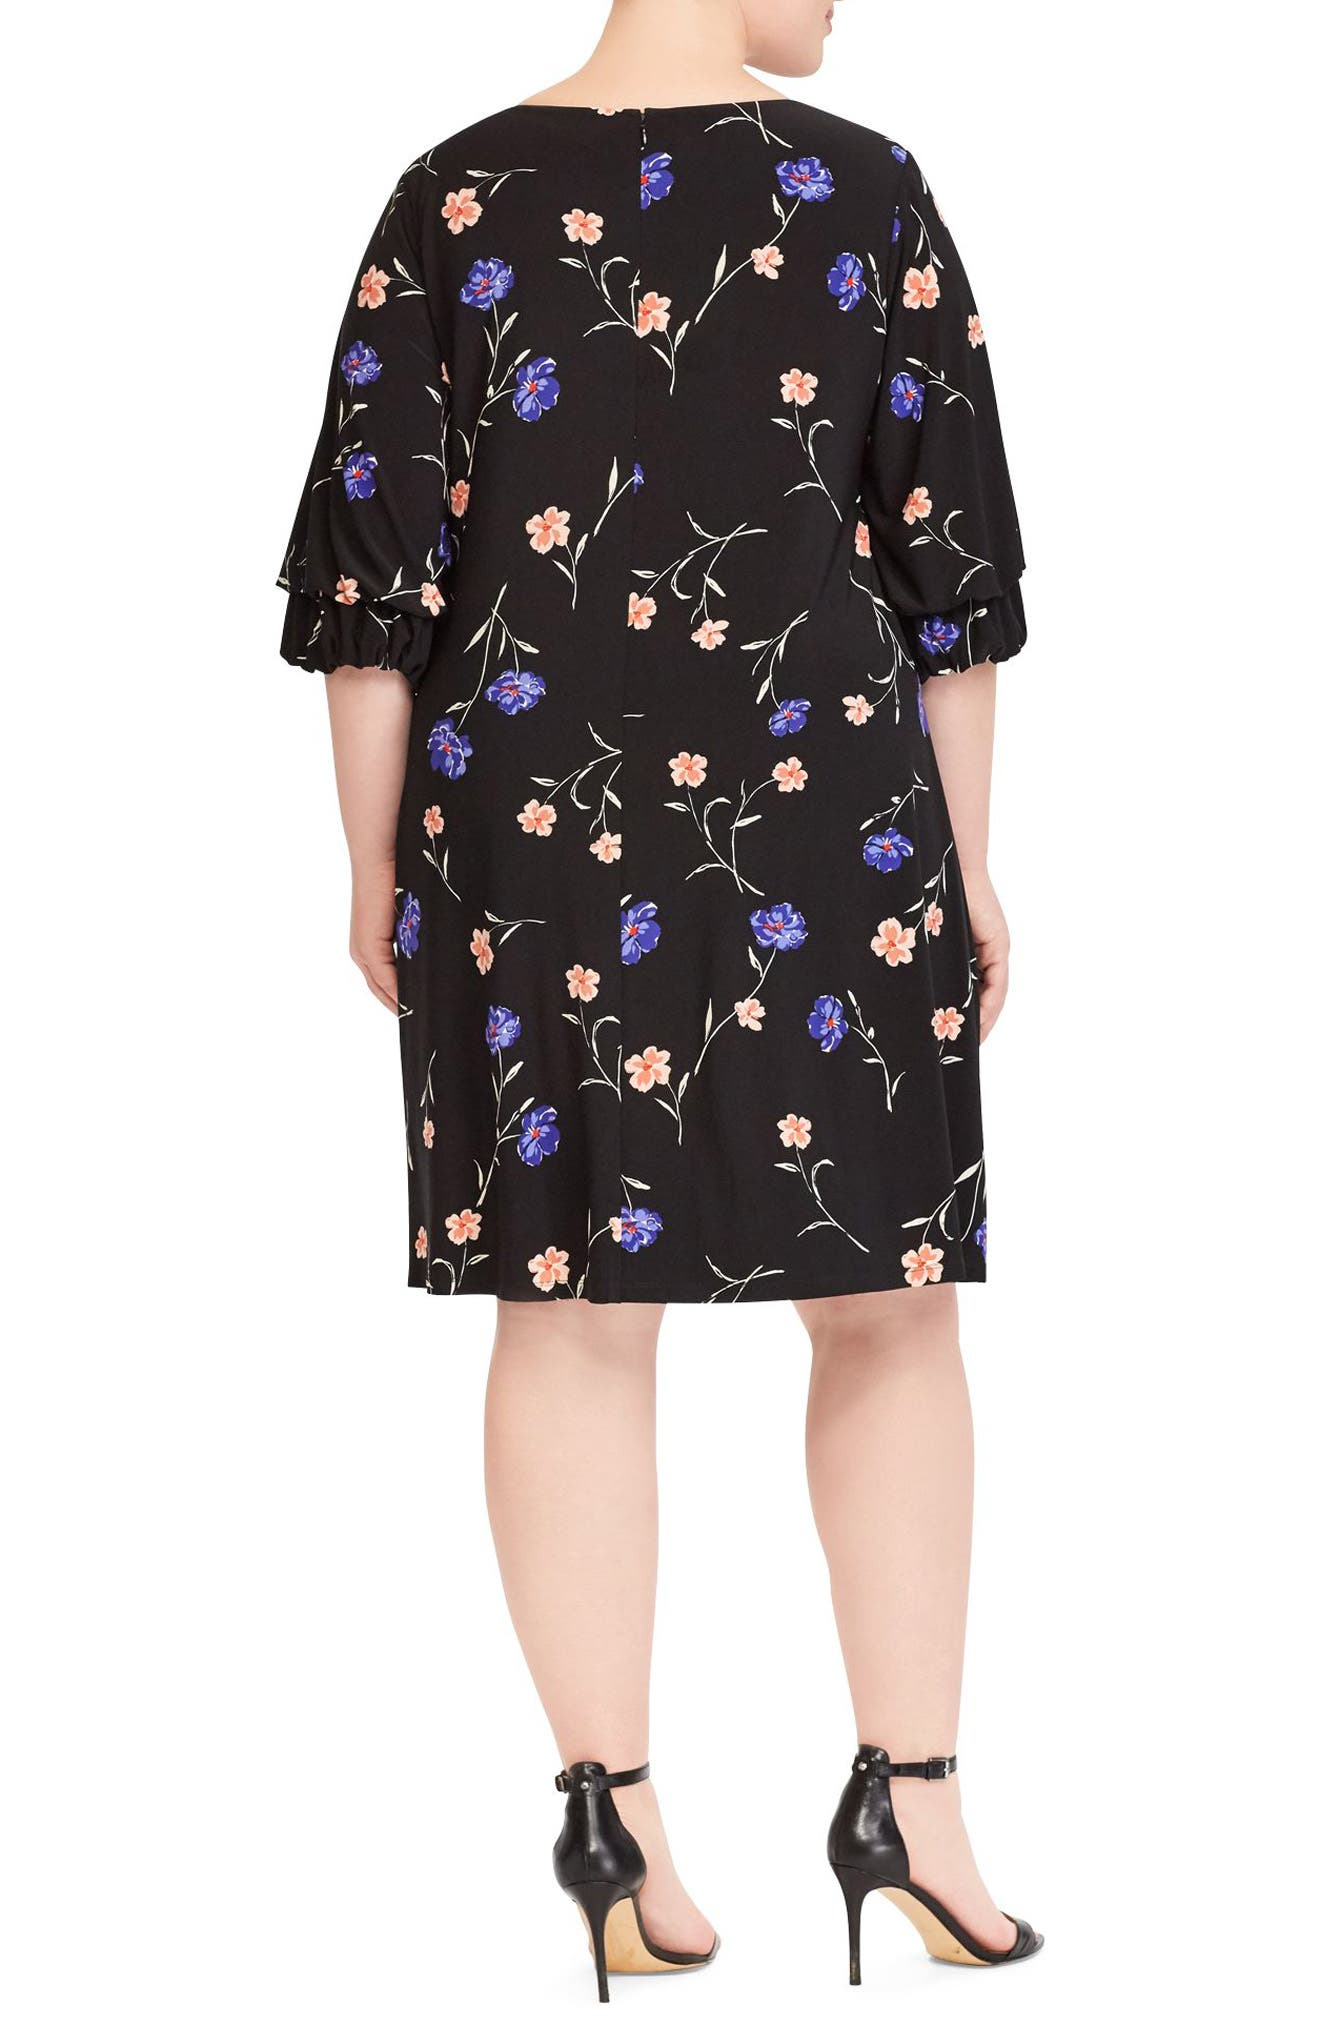 Ruffle Sleeve Floral Print Dress,                             Alternate thumbnail 2, color,                             Black-Blue-Multi